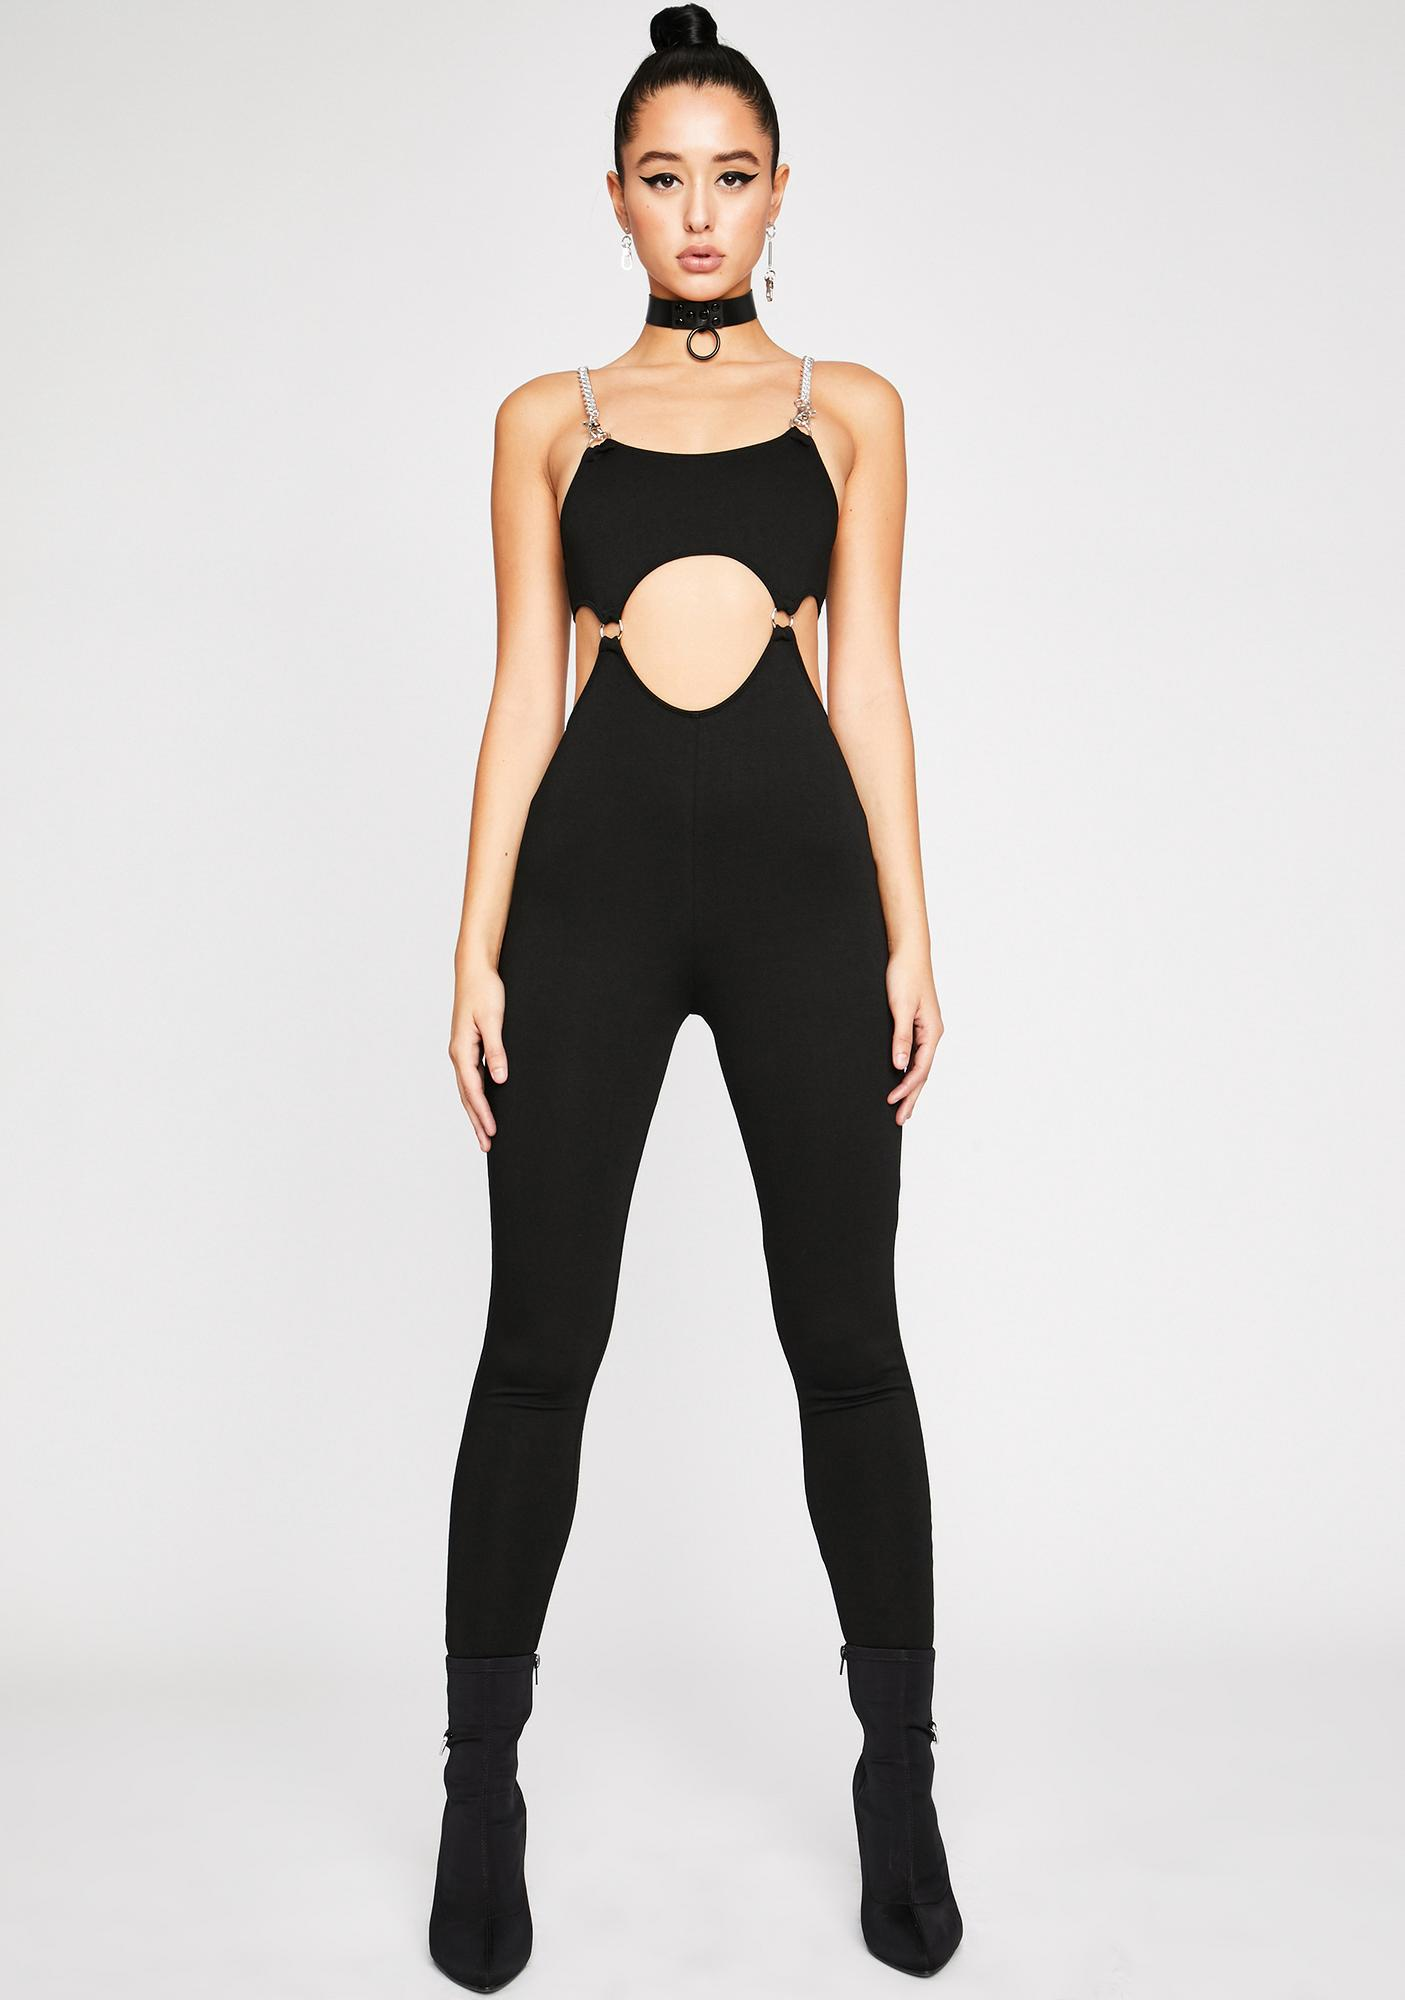 Poster Grl Portrait Mode Cut-Out Catsuit